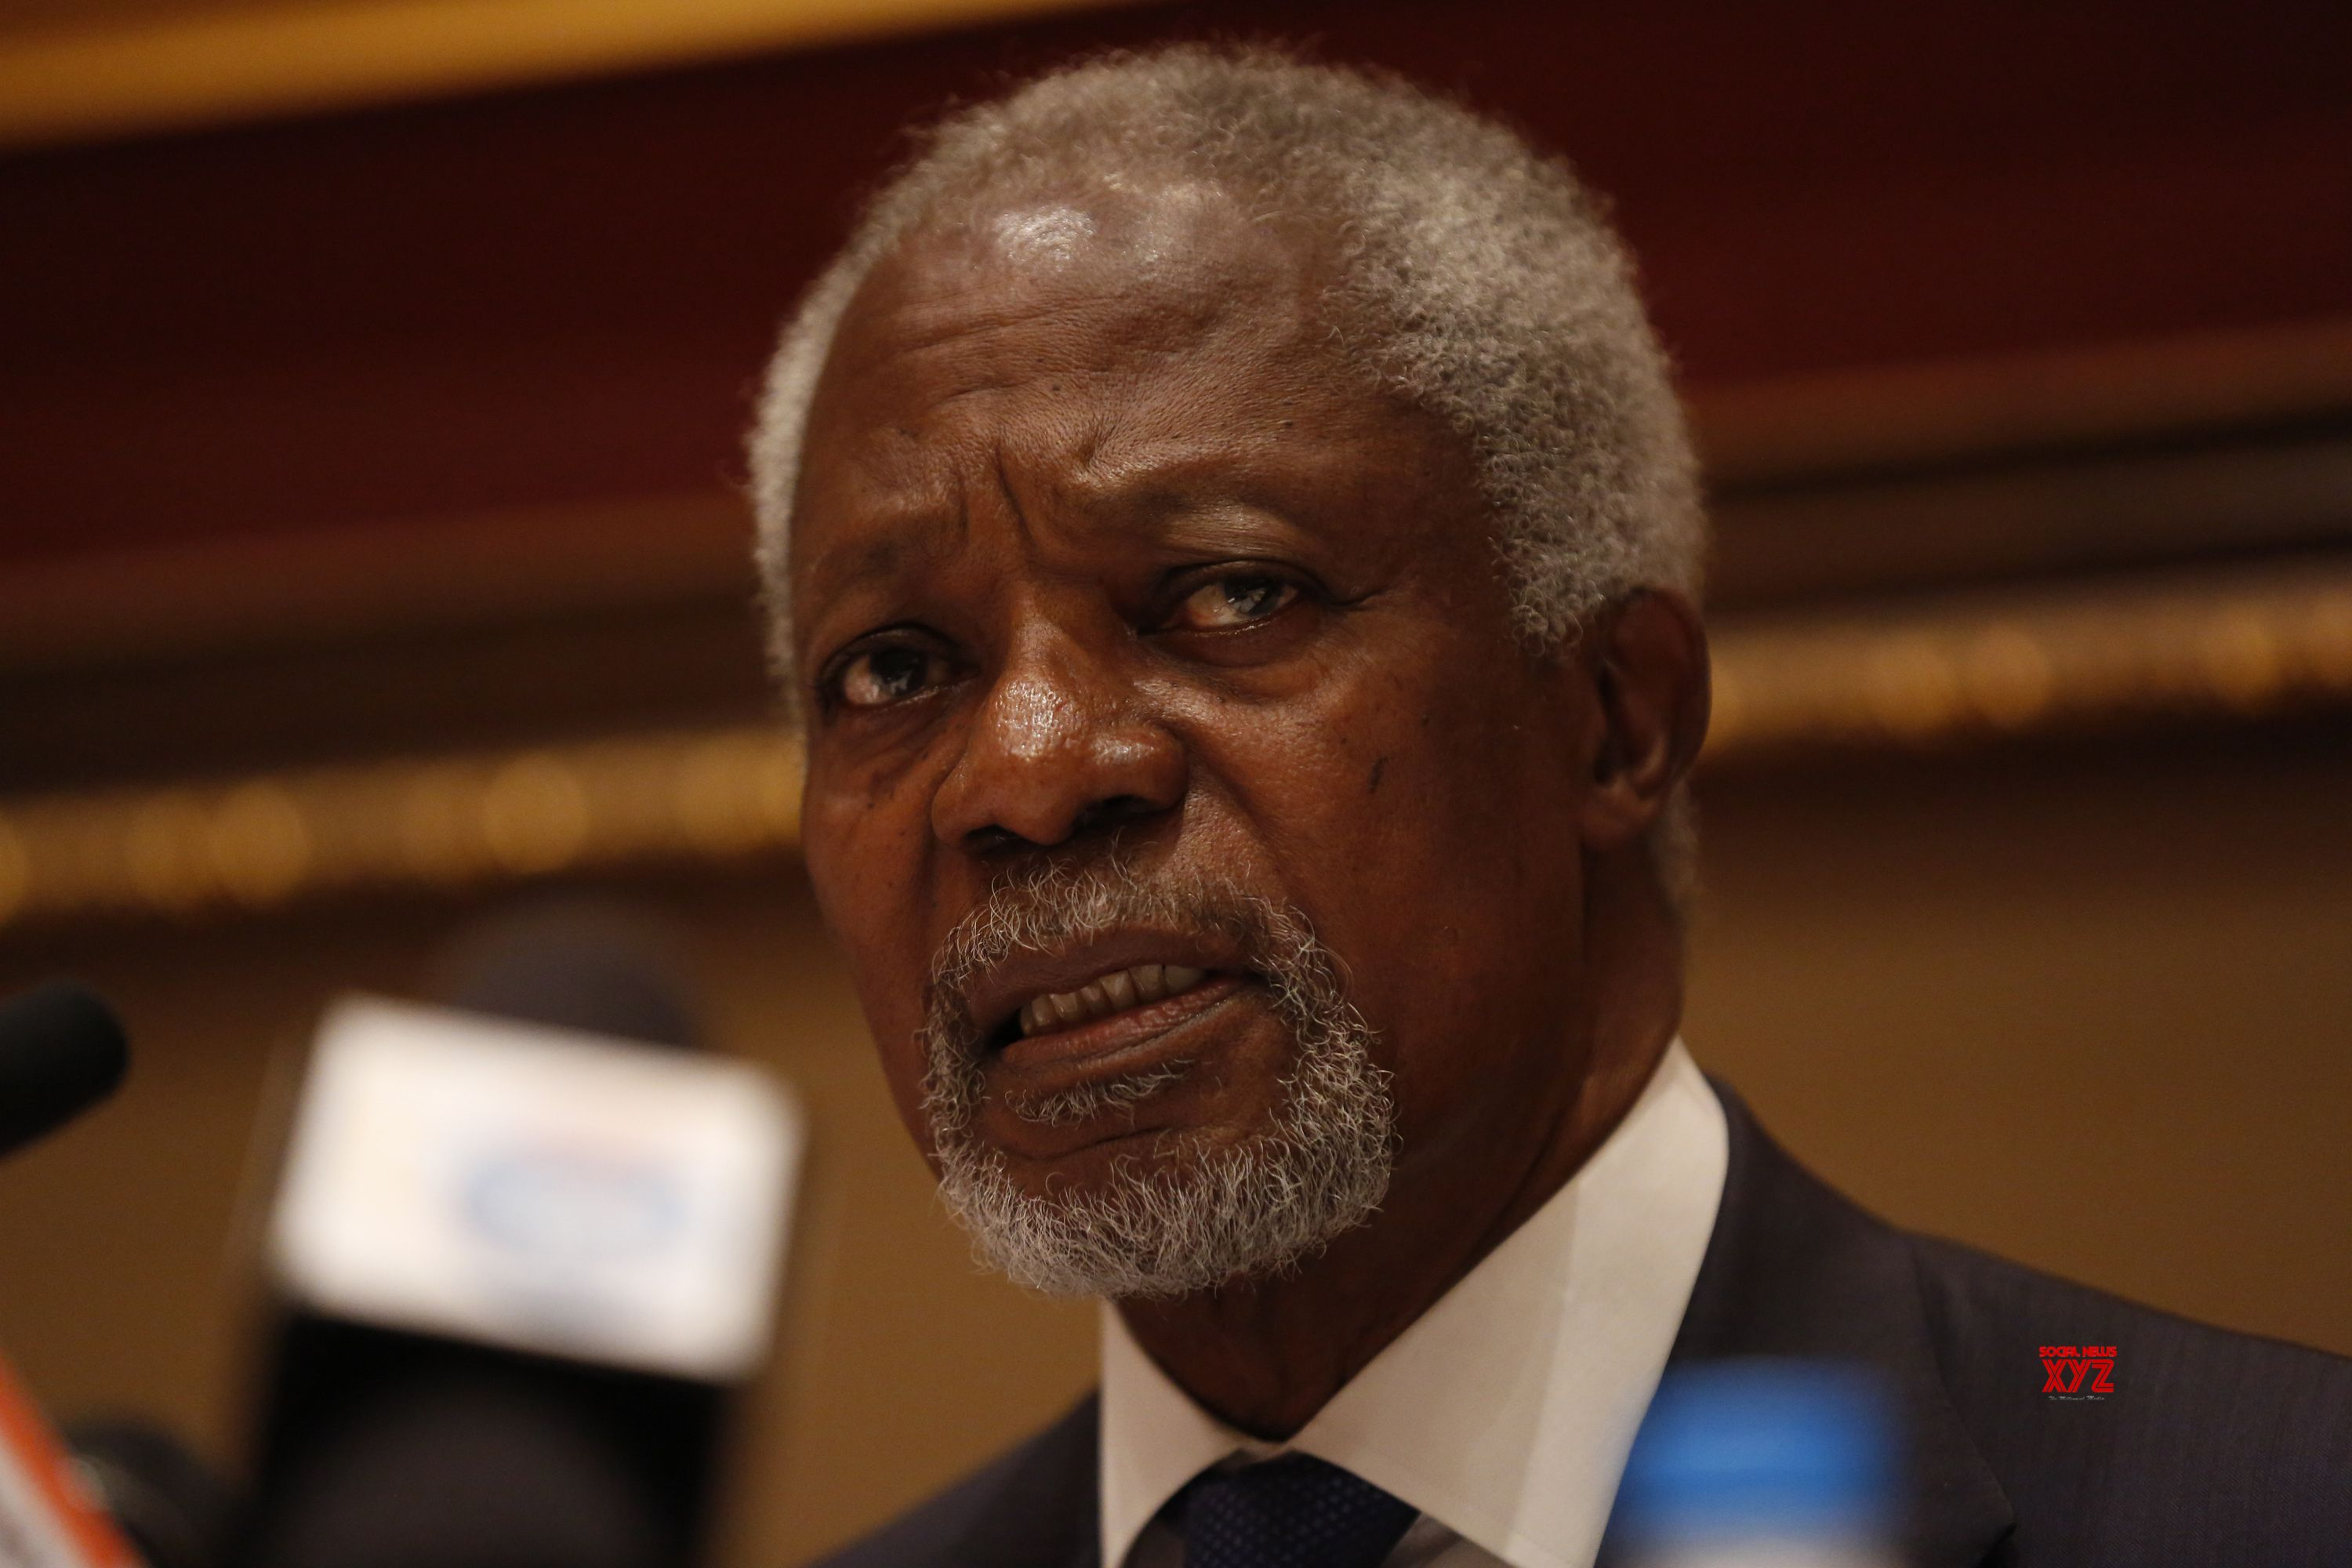 (161206) -- YANGON, Dec. 6, 2016 (Xinhua) -- Kofi Annan, chairman of Myanmar government-appointed Rakhine State Advisory Commission, speaks to media during a press conference in Yangon, Myanmar, Dec. 6, 2016. Kofi Annan on Tuesday called for stability in Myanmar's Rakhine state for development of the region at a press conference here at the end of his eight-day trip to the state on a fact-finding mission as tasked by the government. (Xinhua/U Aung) ****Authorized by ytfs****